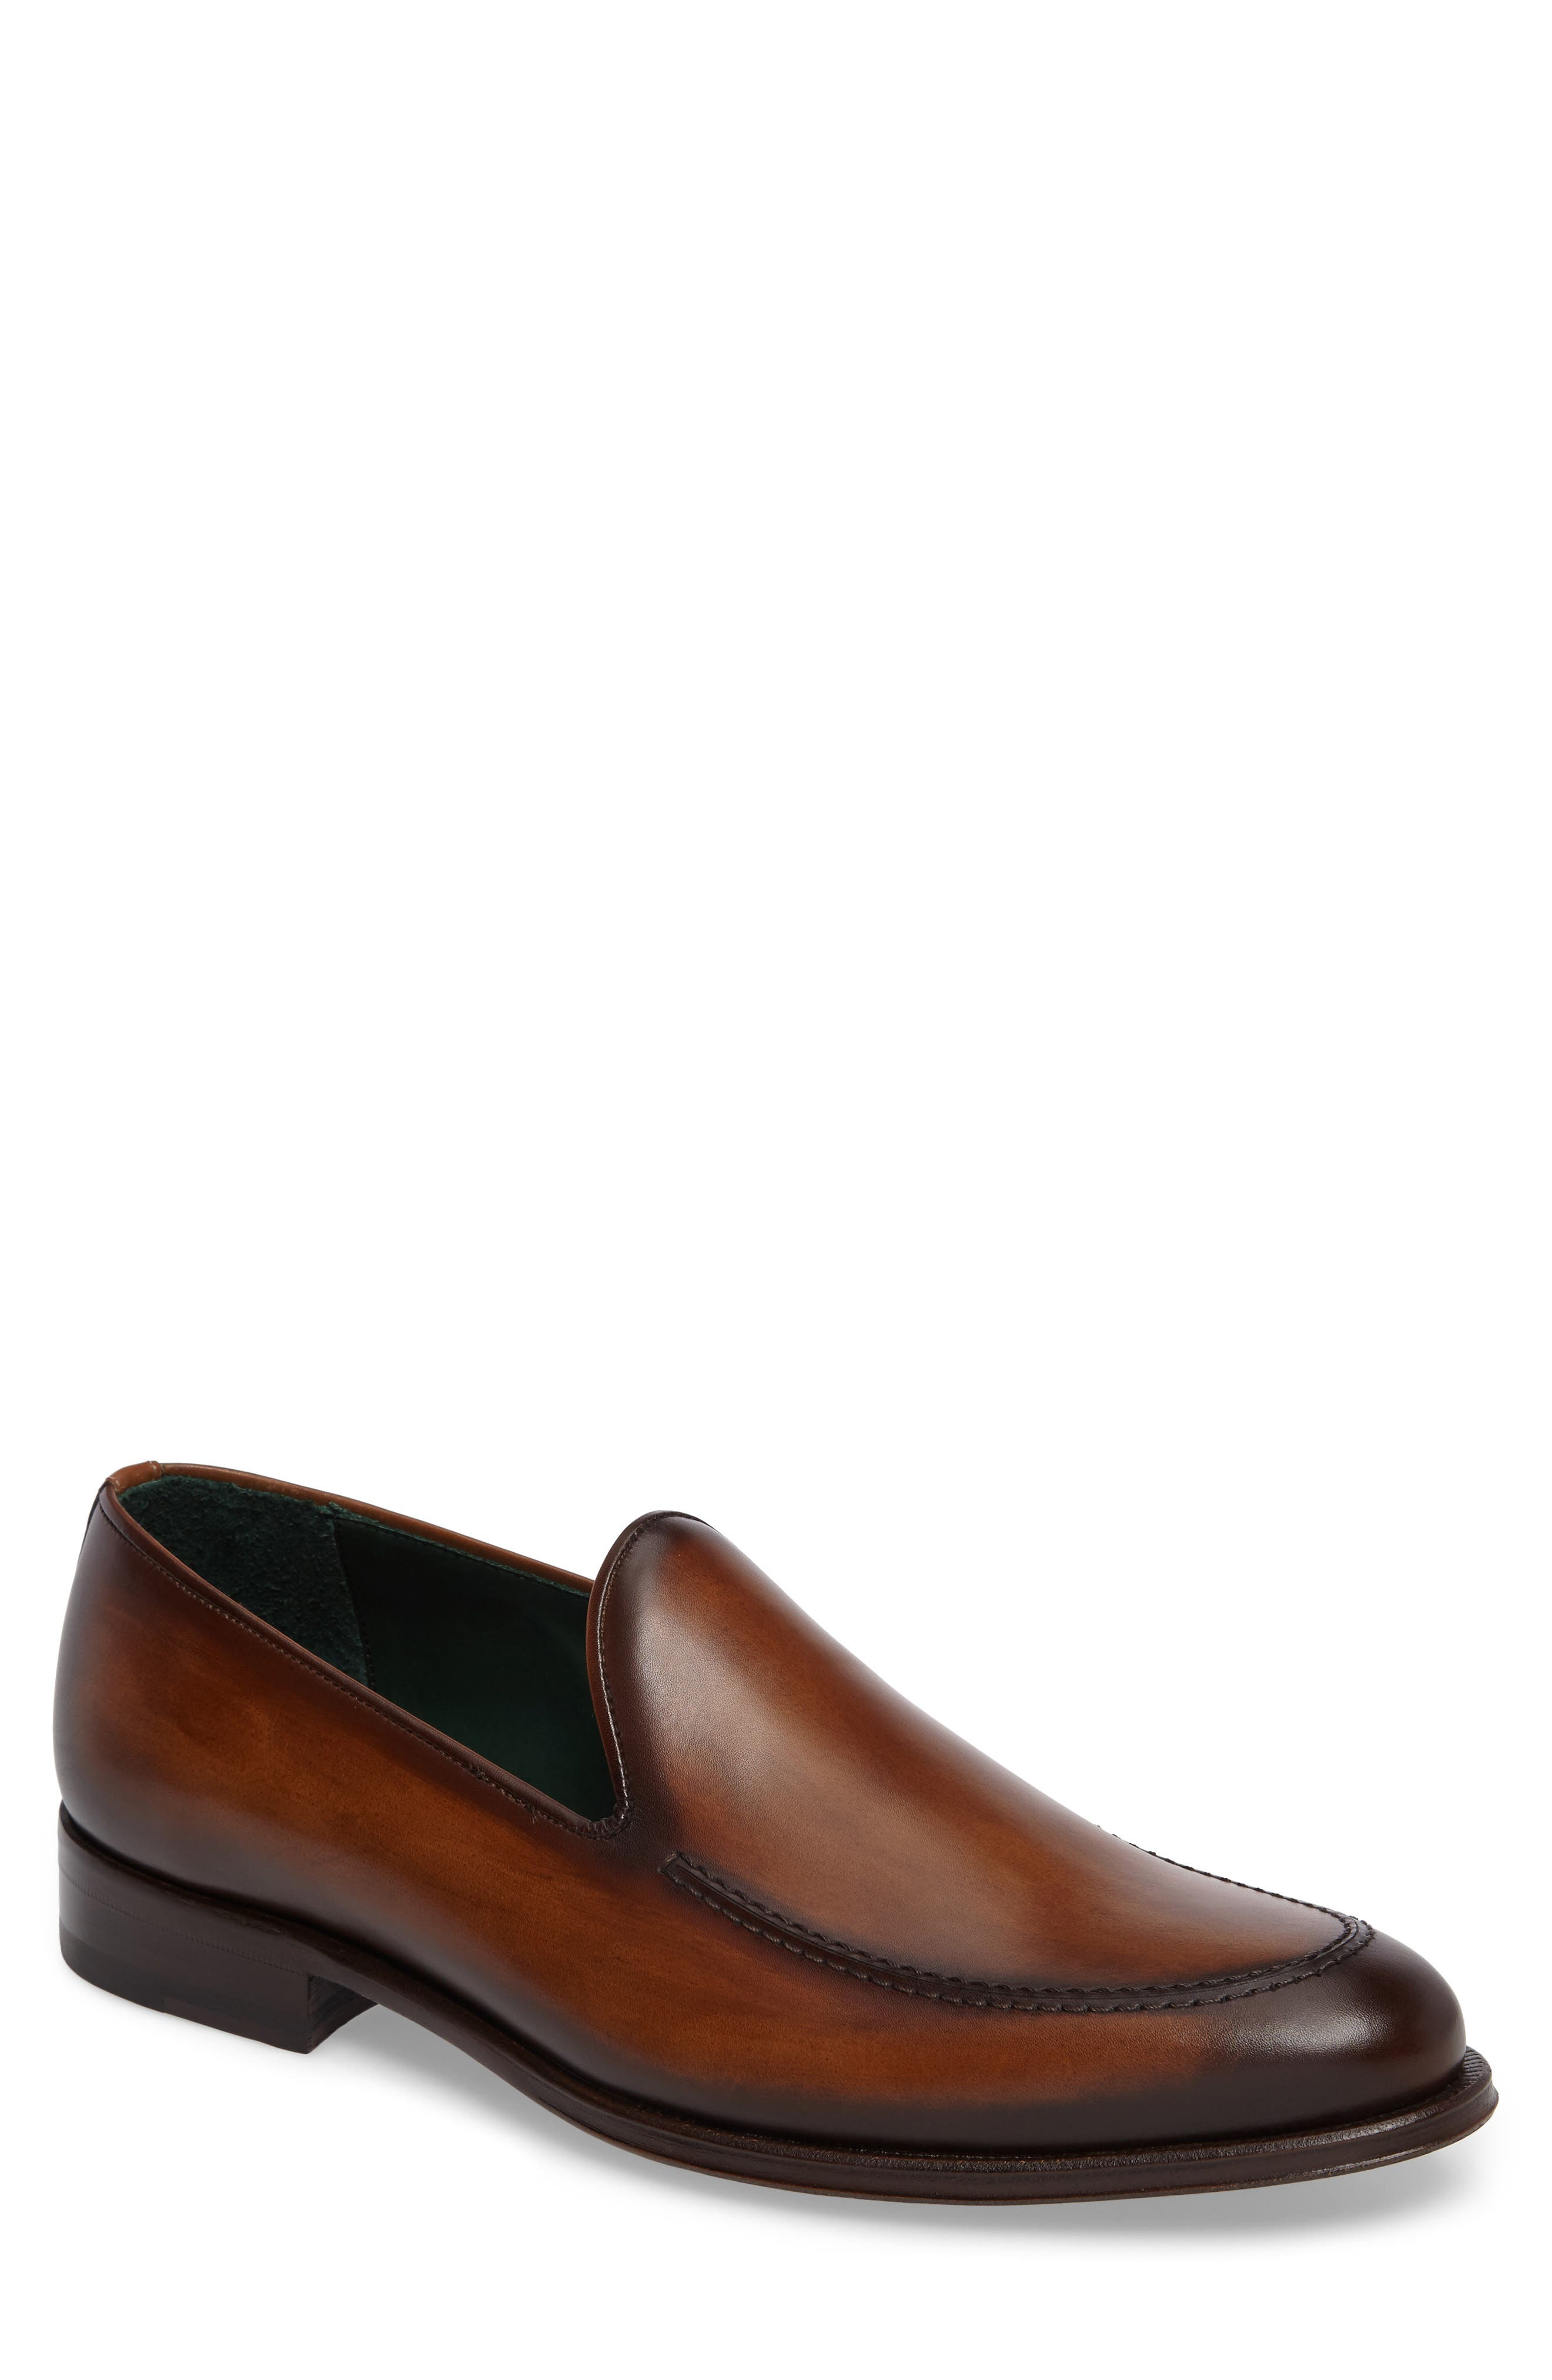 MEZLAN Rodin Apron Toe Loafer in Cognac Leather